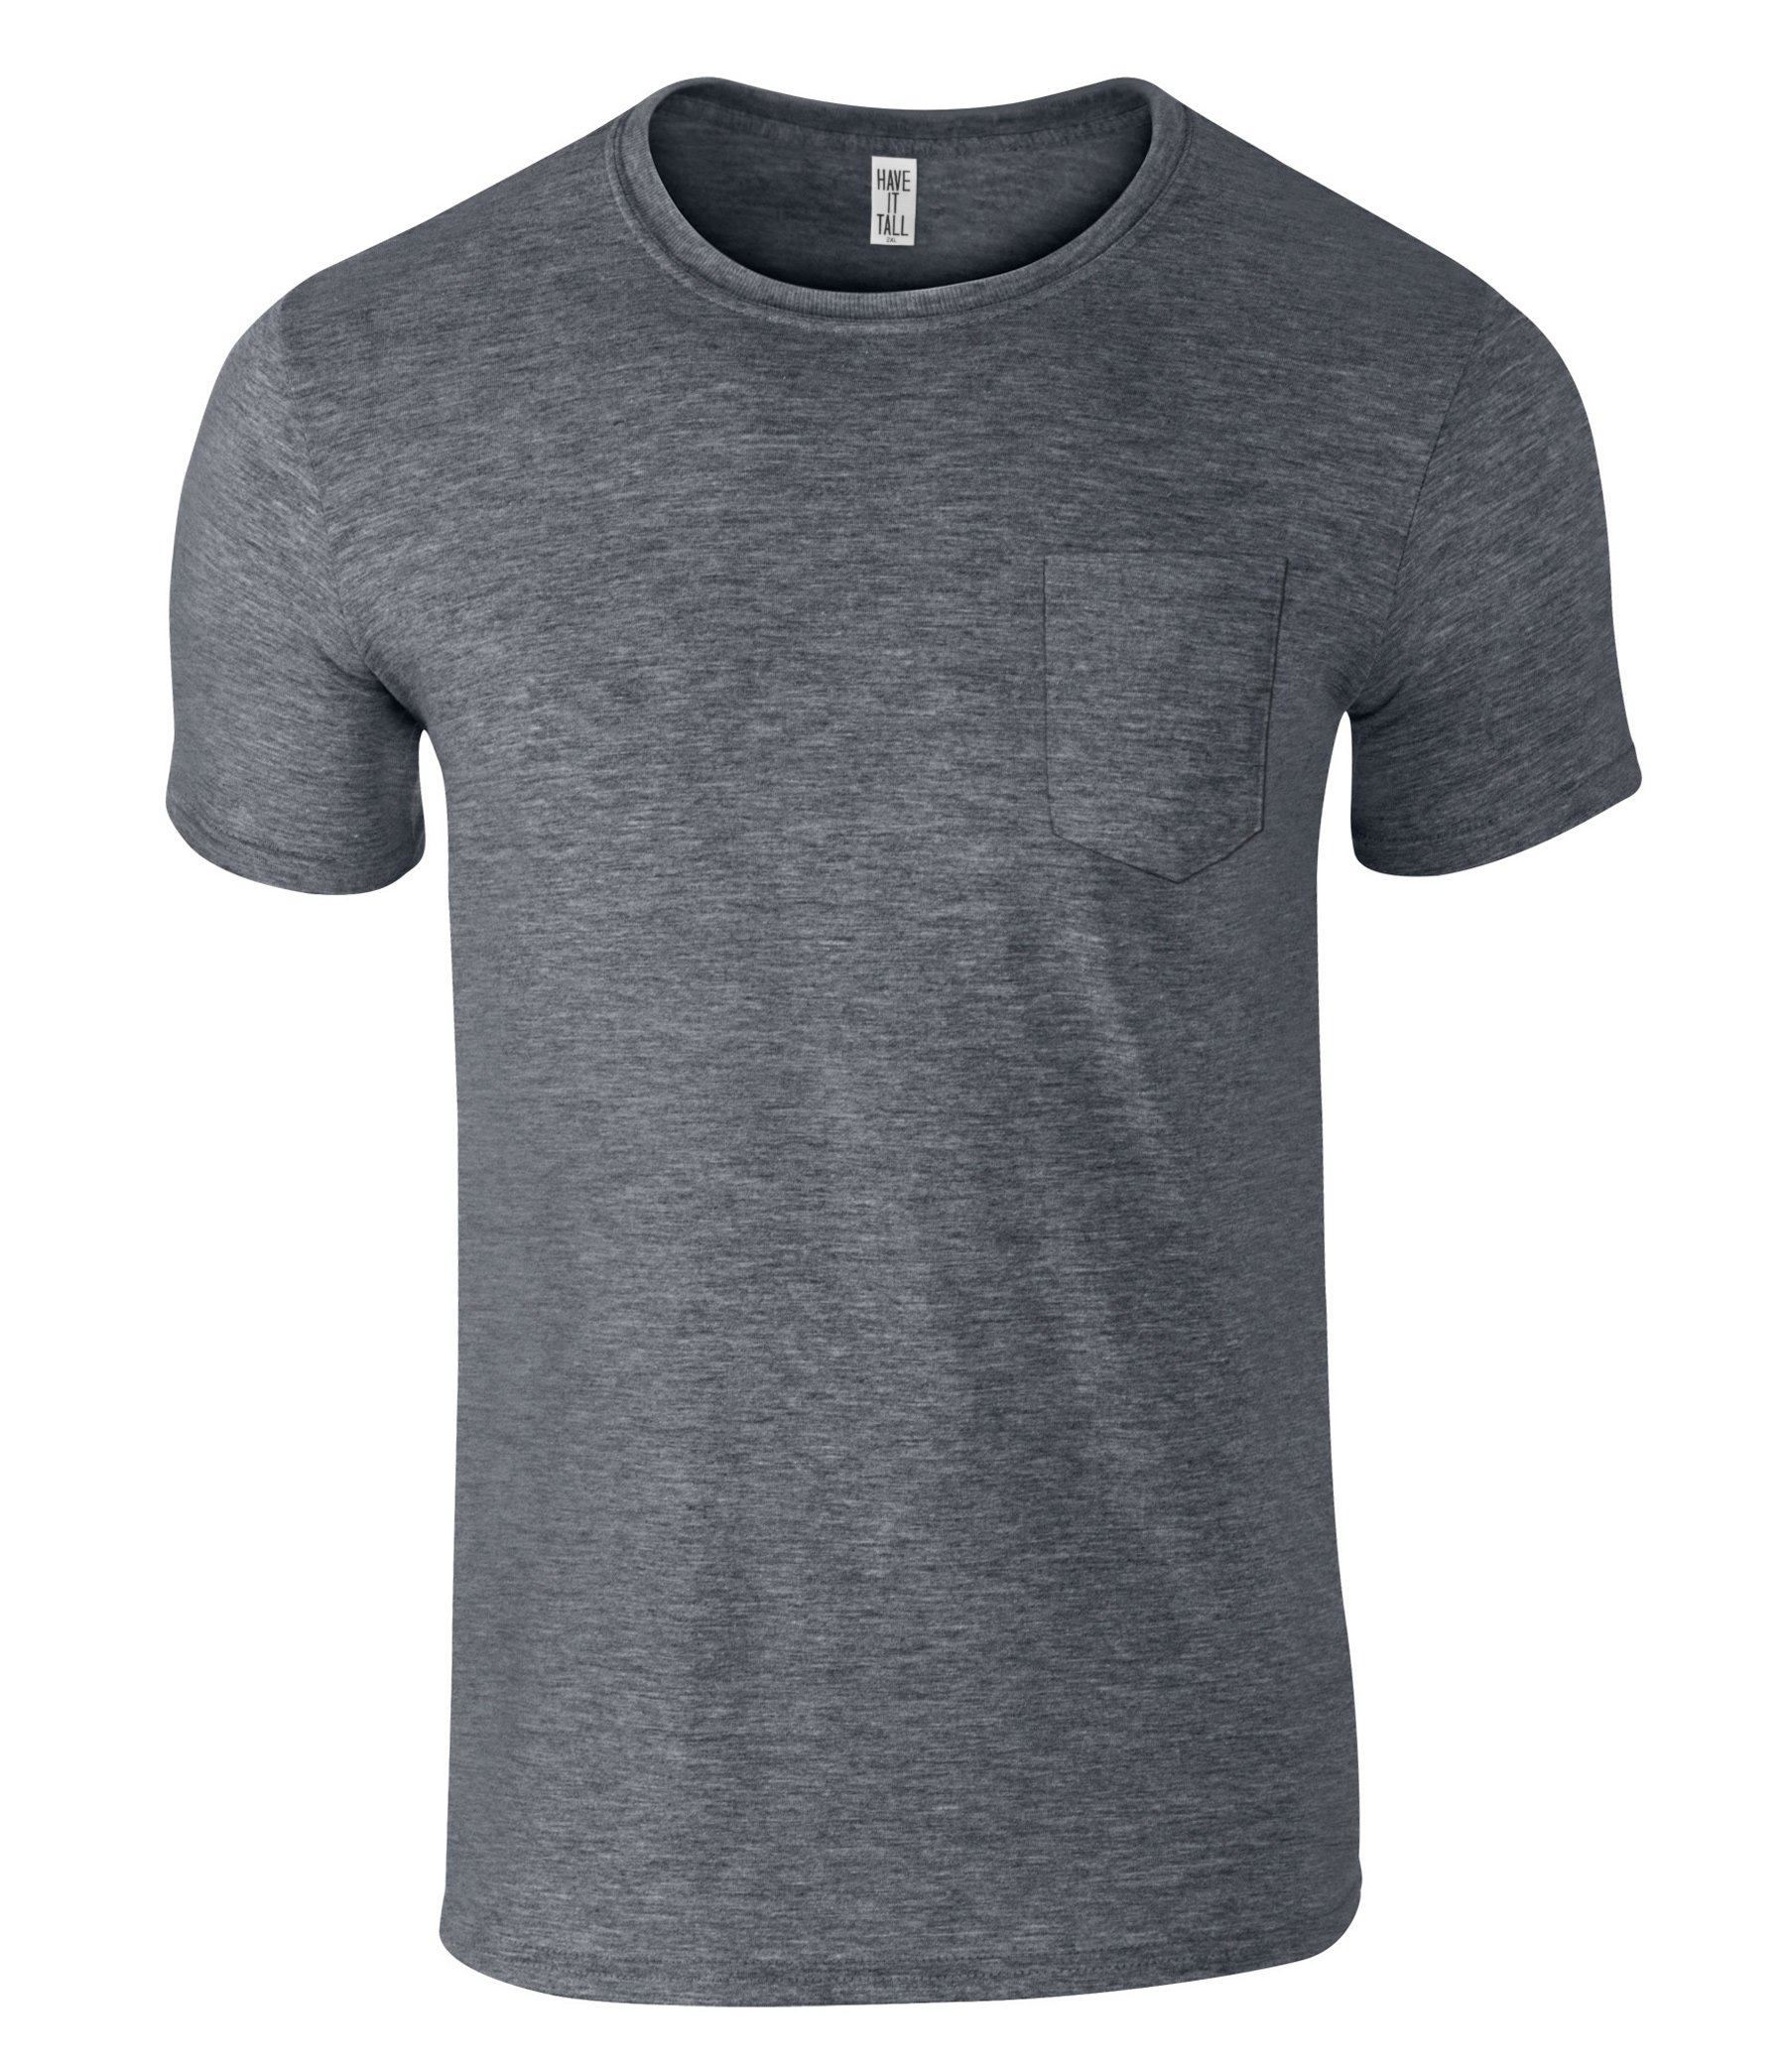 Have It Tall Men's Slim Fashion Fit Pocket T Shirt Heather Charcoal X-Large Tall